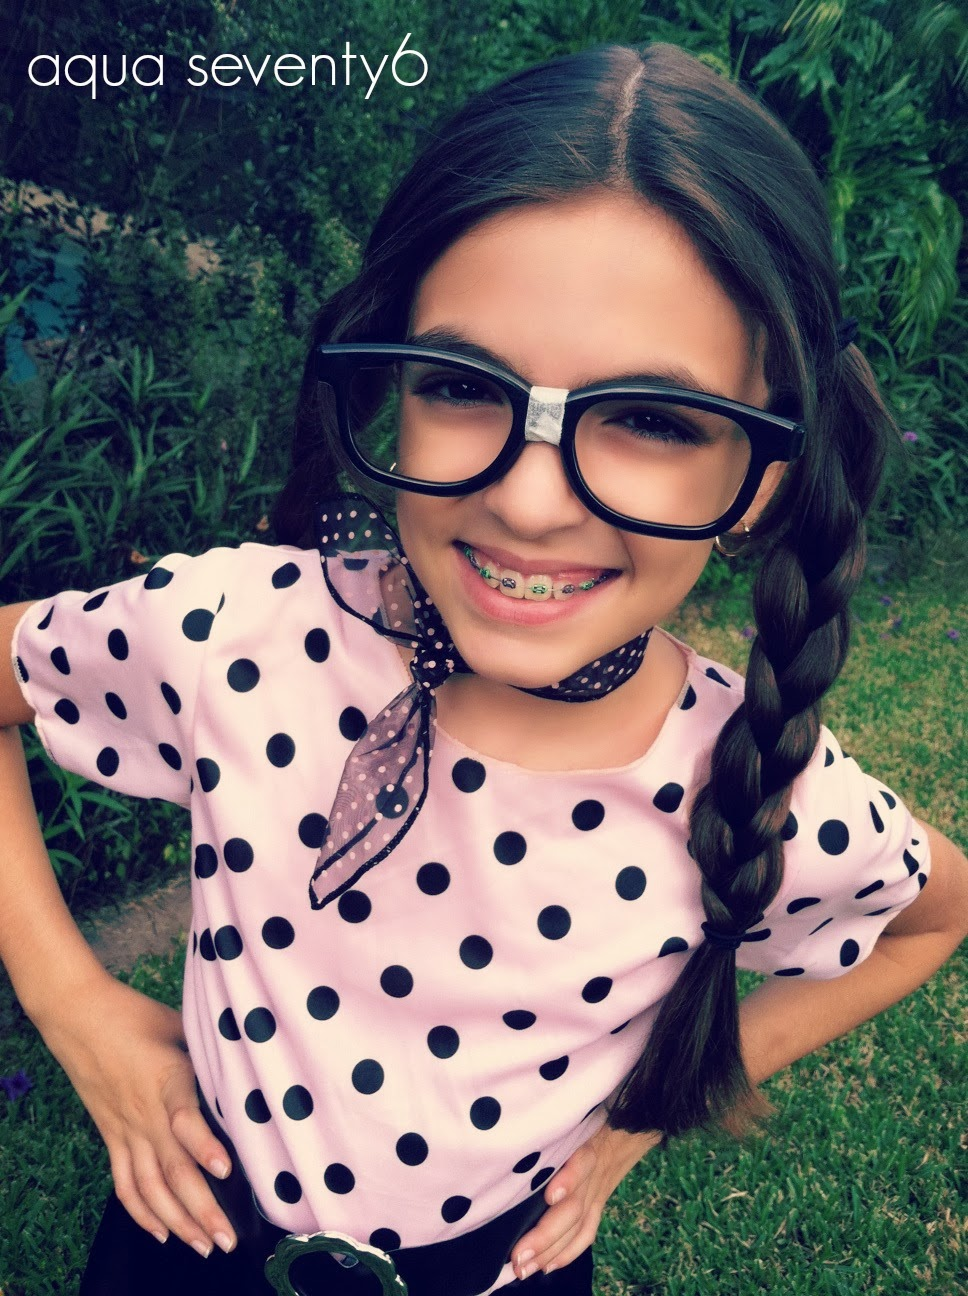 nerd outfit ideas for girls